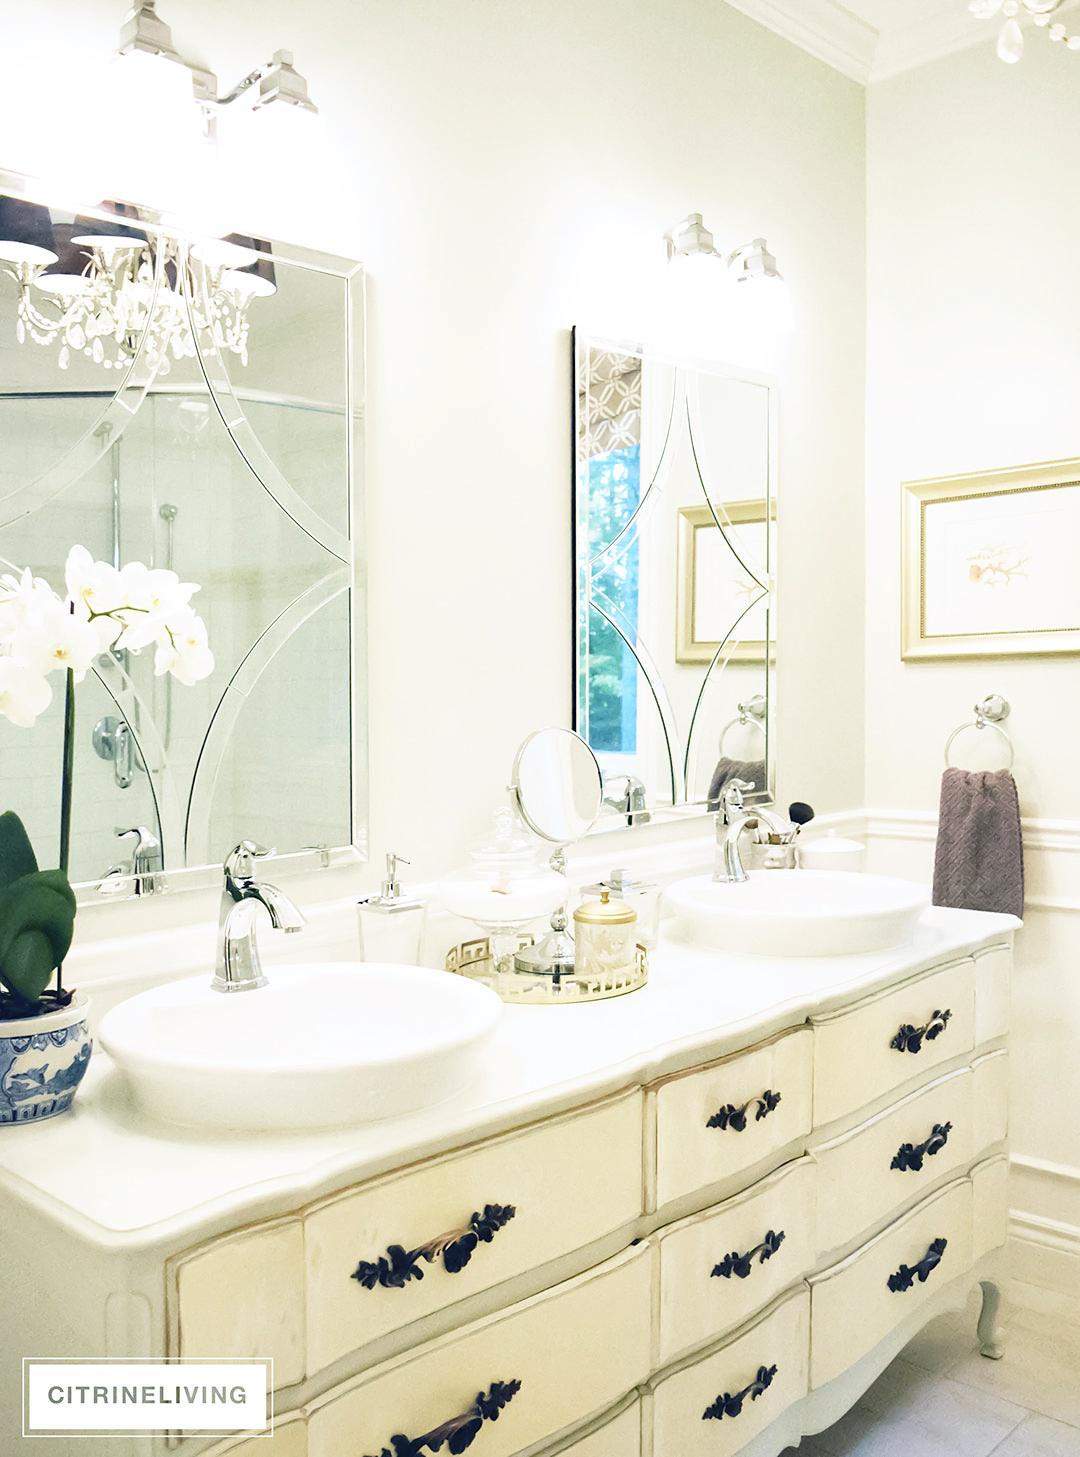 99bacdfeb Beautiful vintage inspired bathroom with elegant details